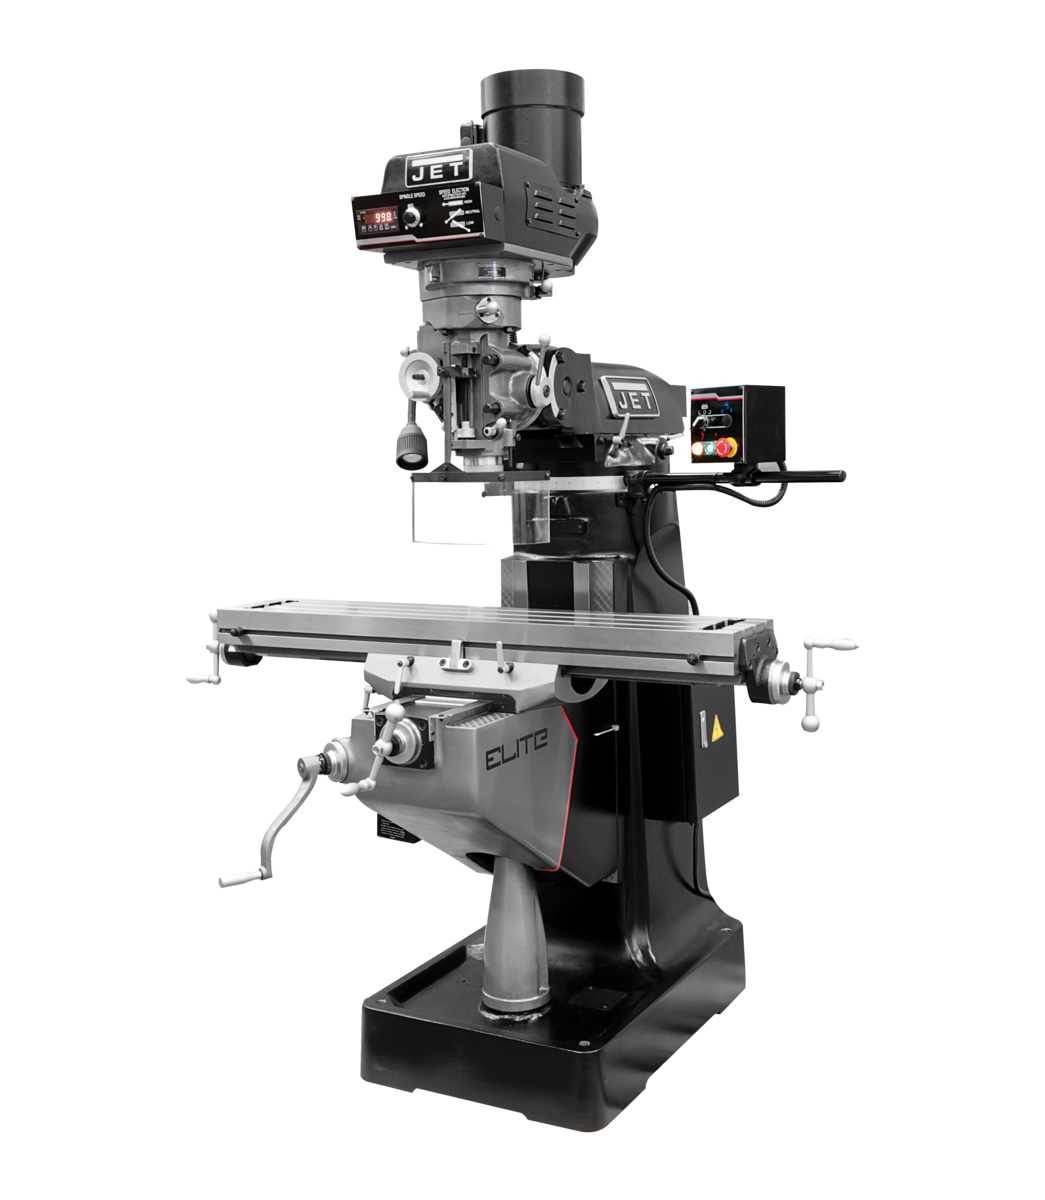 EVS-949 Mill with 2-Axis Newall DP700 DRO and X, Y, Z-Axis JET Powerfeeds